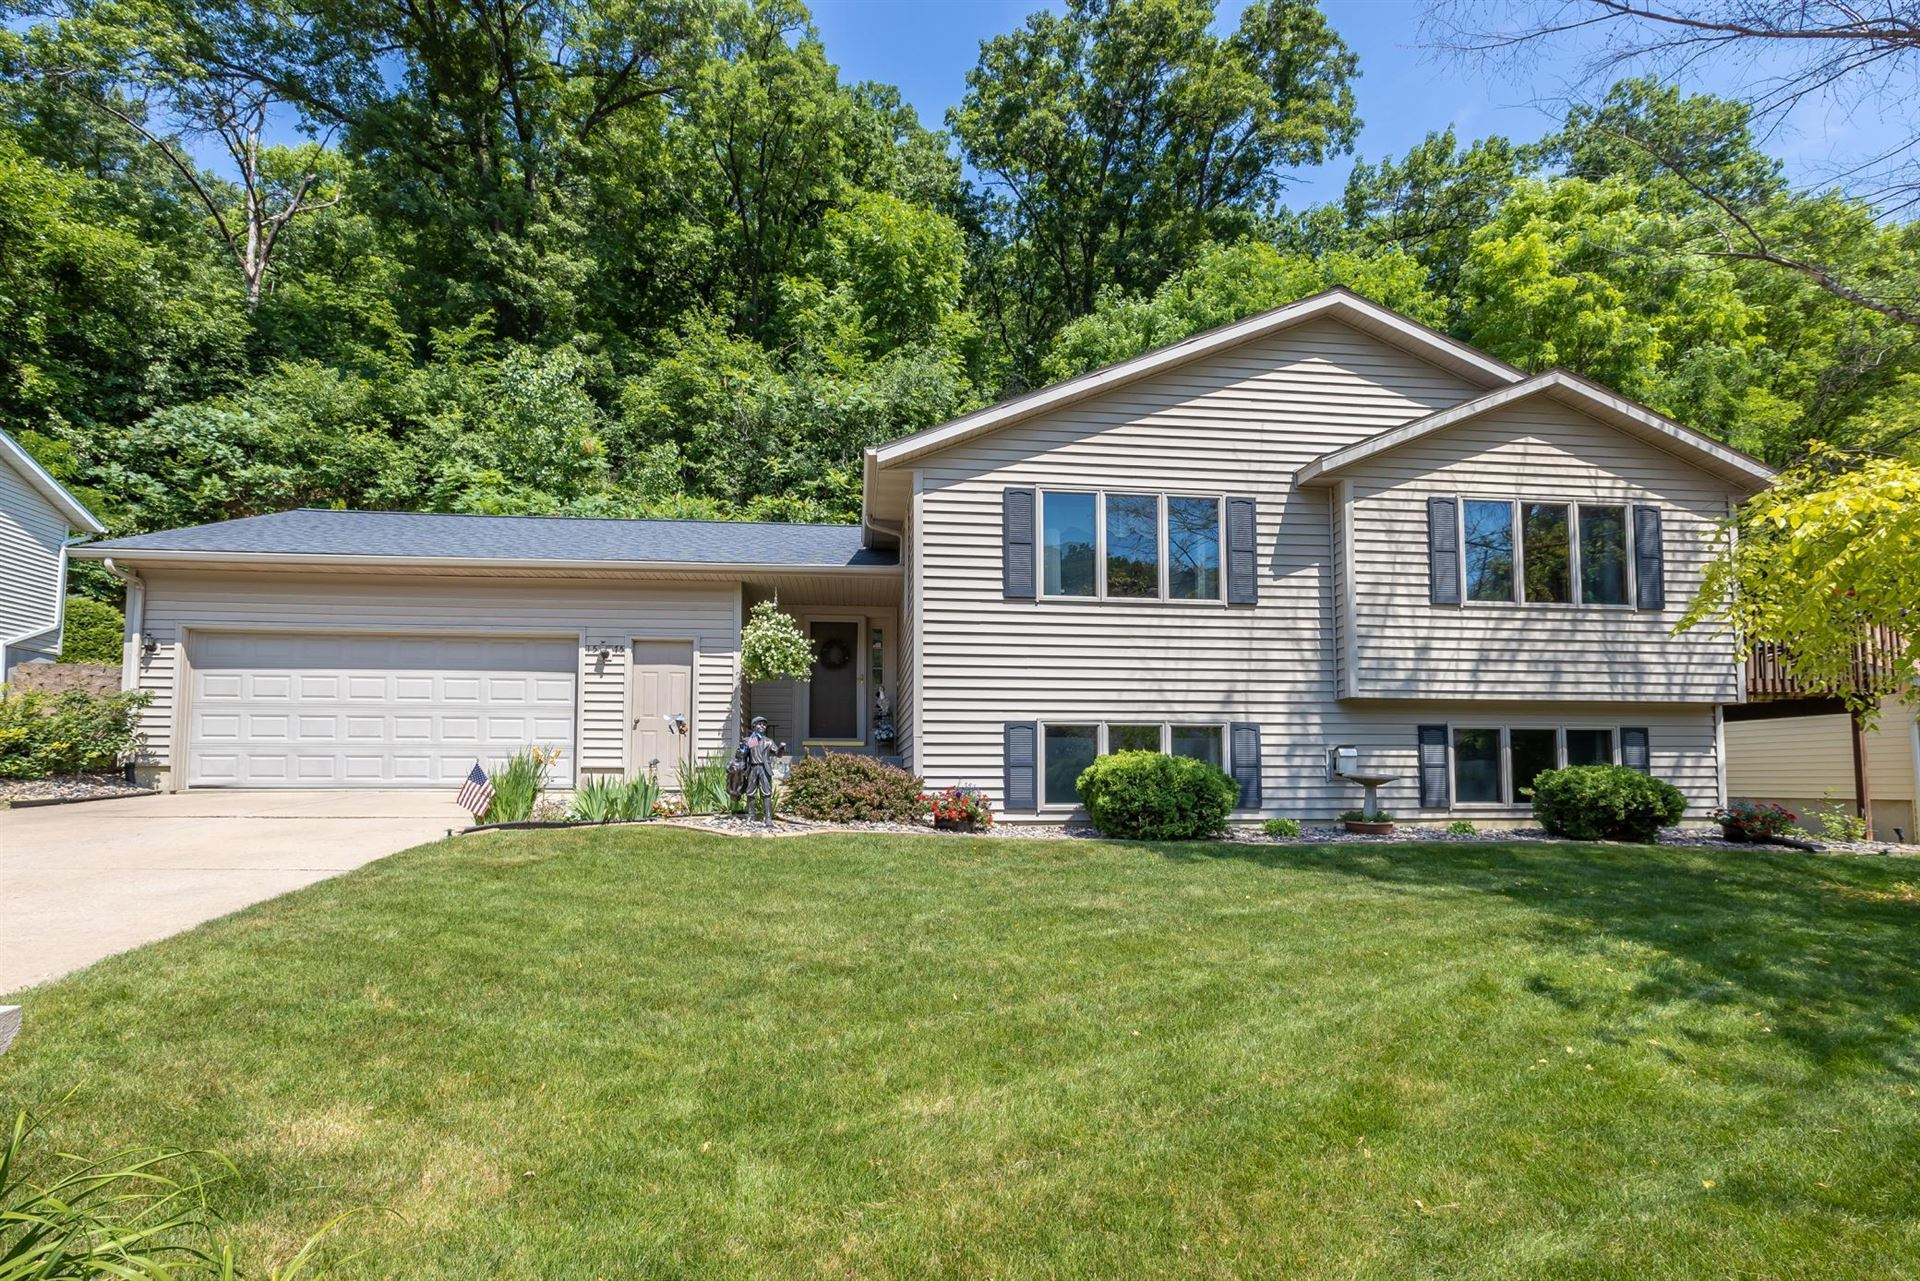 1575 49th Avenue, Goodview, MN 55987 - MLS#: 5619712